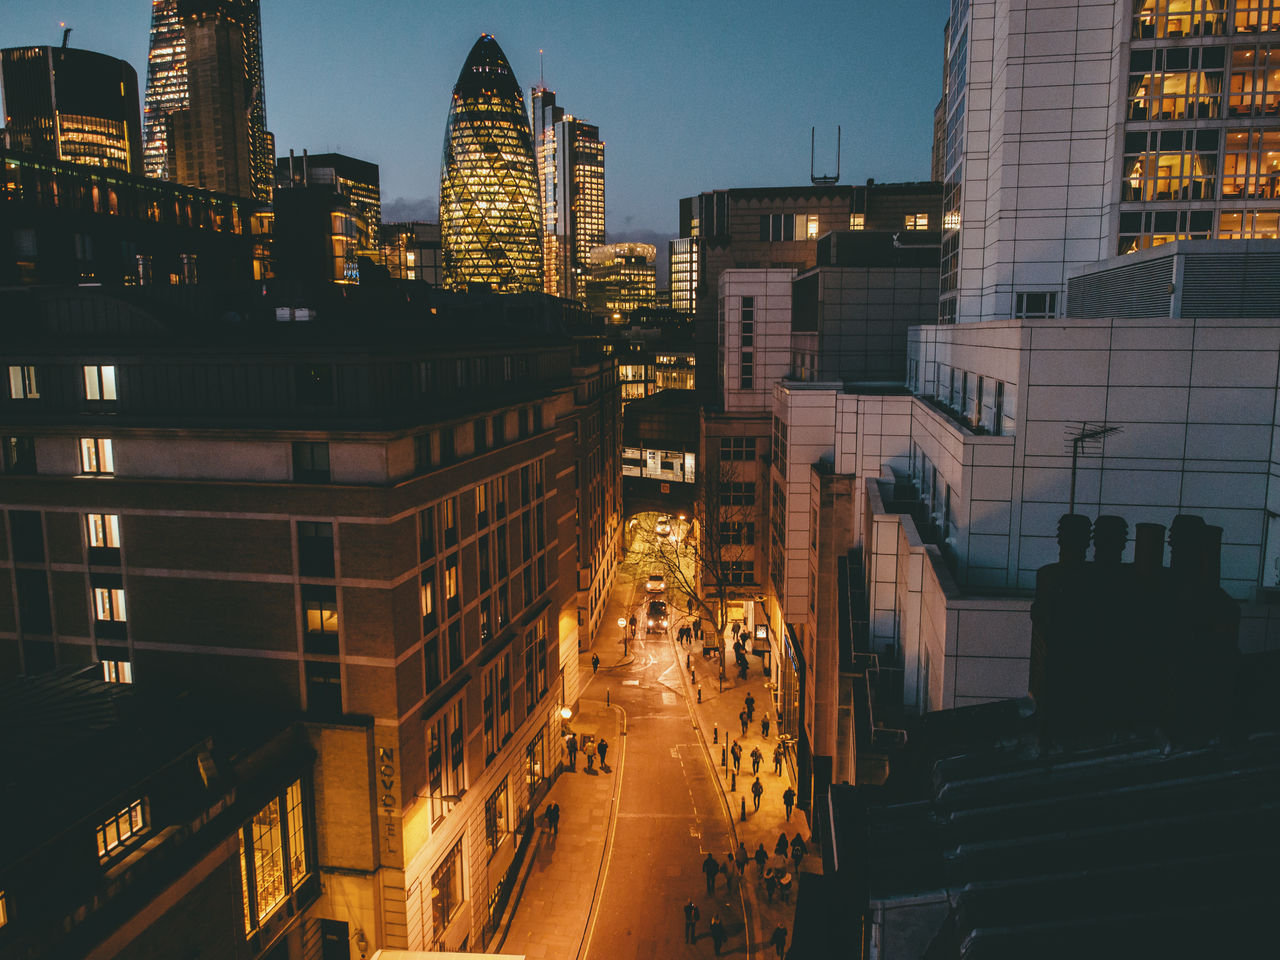 London City - GettyImages-699158147_medium.jpg